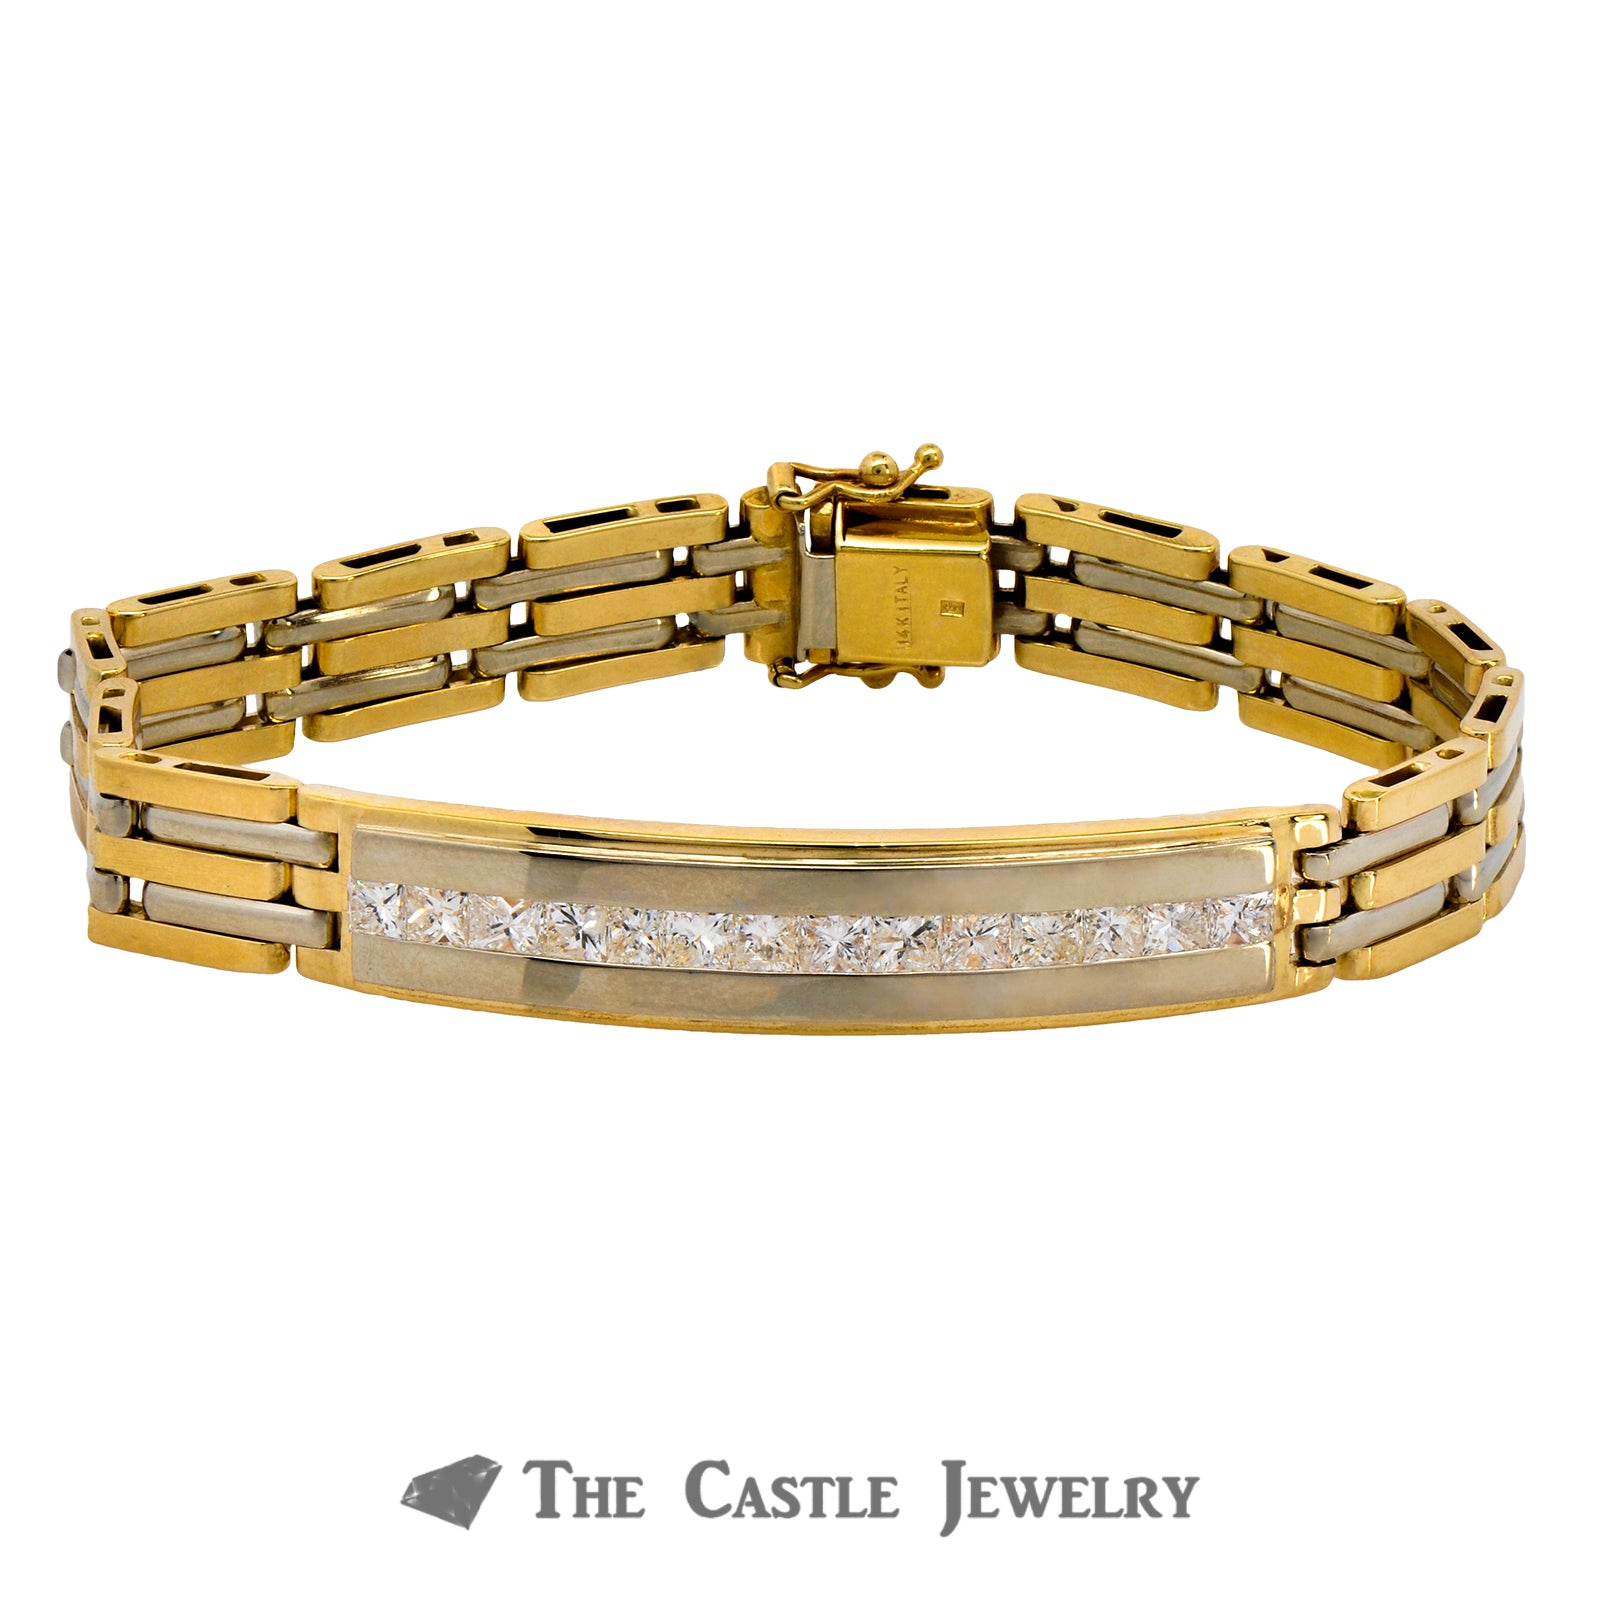 8 Inch Men's Bracelet Crafted in 14K Yellow Gold with Princess Cut Diamonds in Center